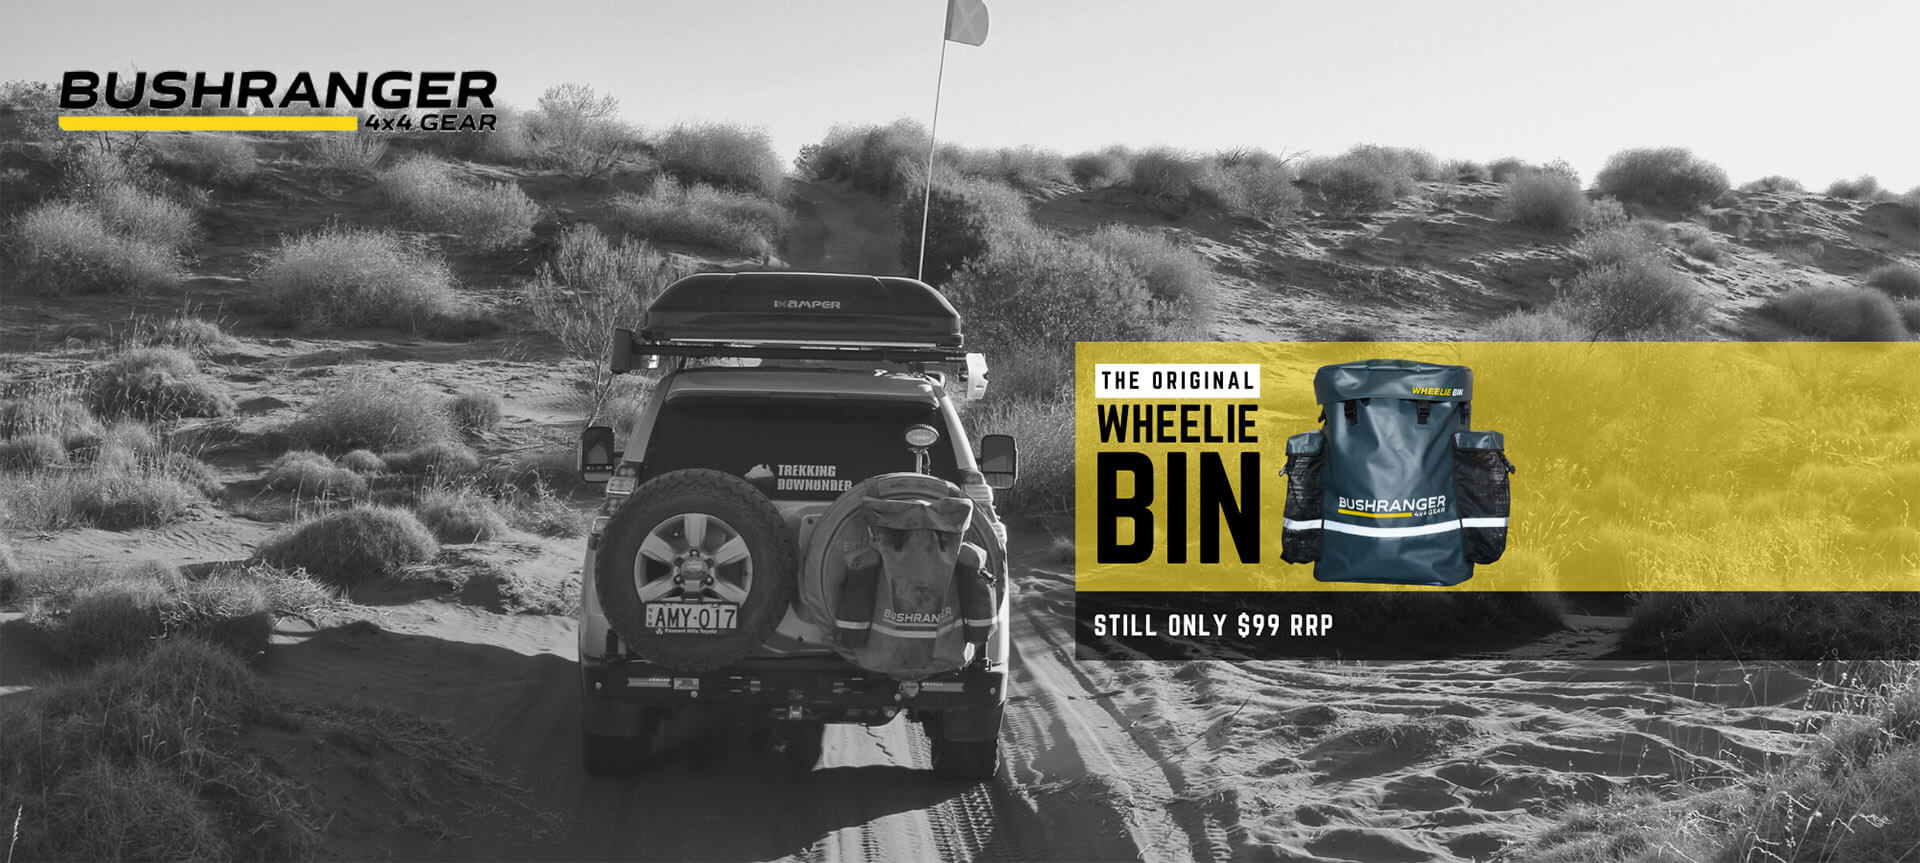 We stock the full range of Bushranger 4x4 Accessories to suit your 4x4